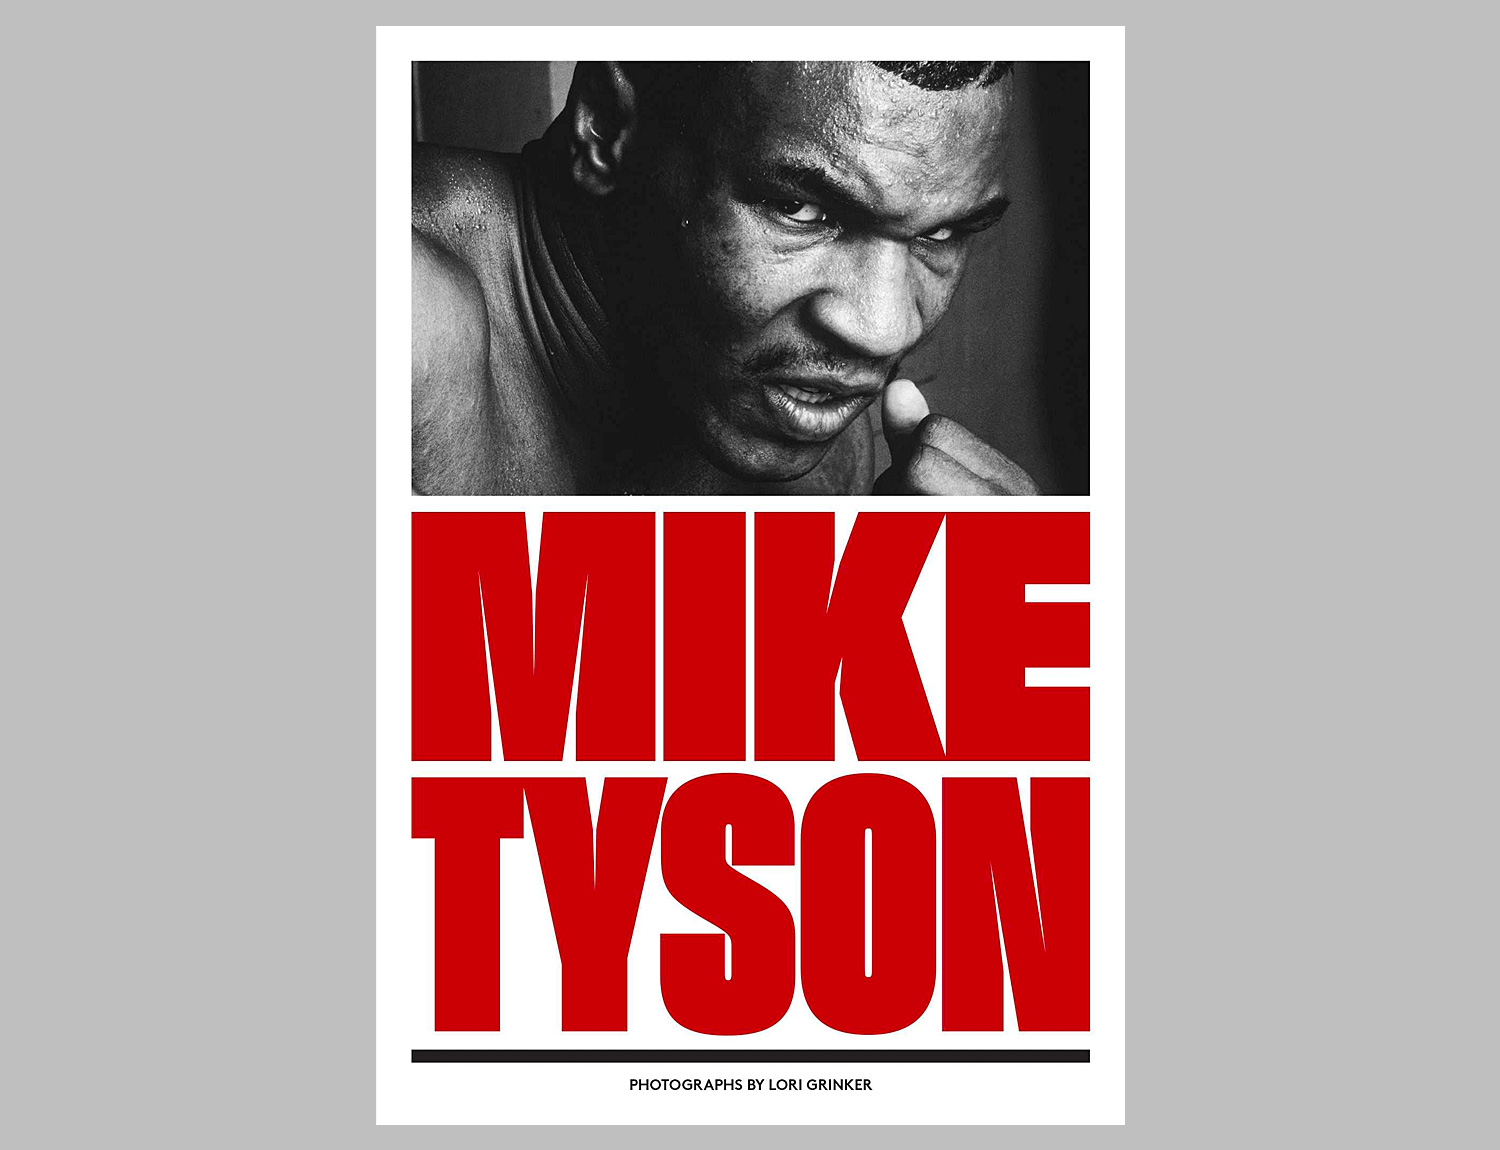 Mike Tyson: Photographs By Lori Grinker at werd.com